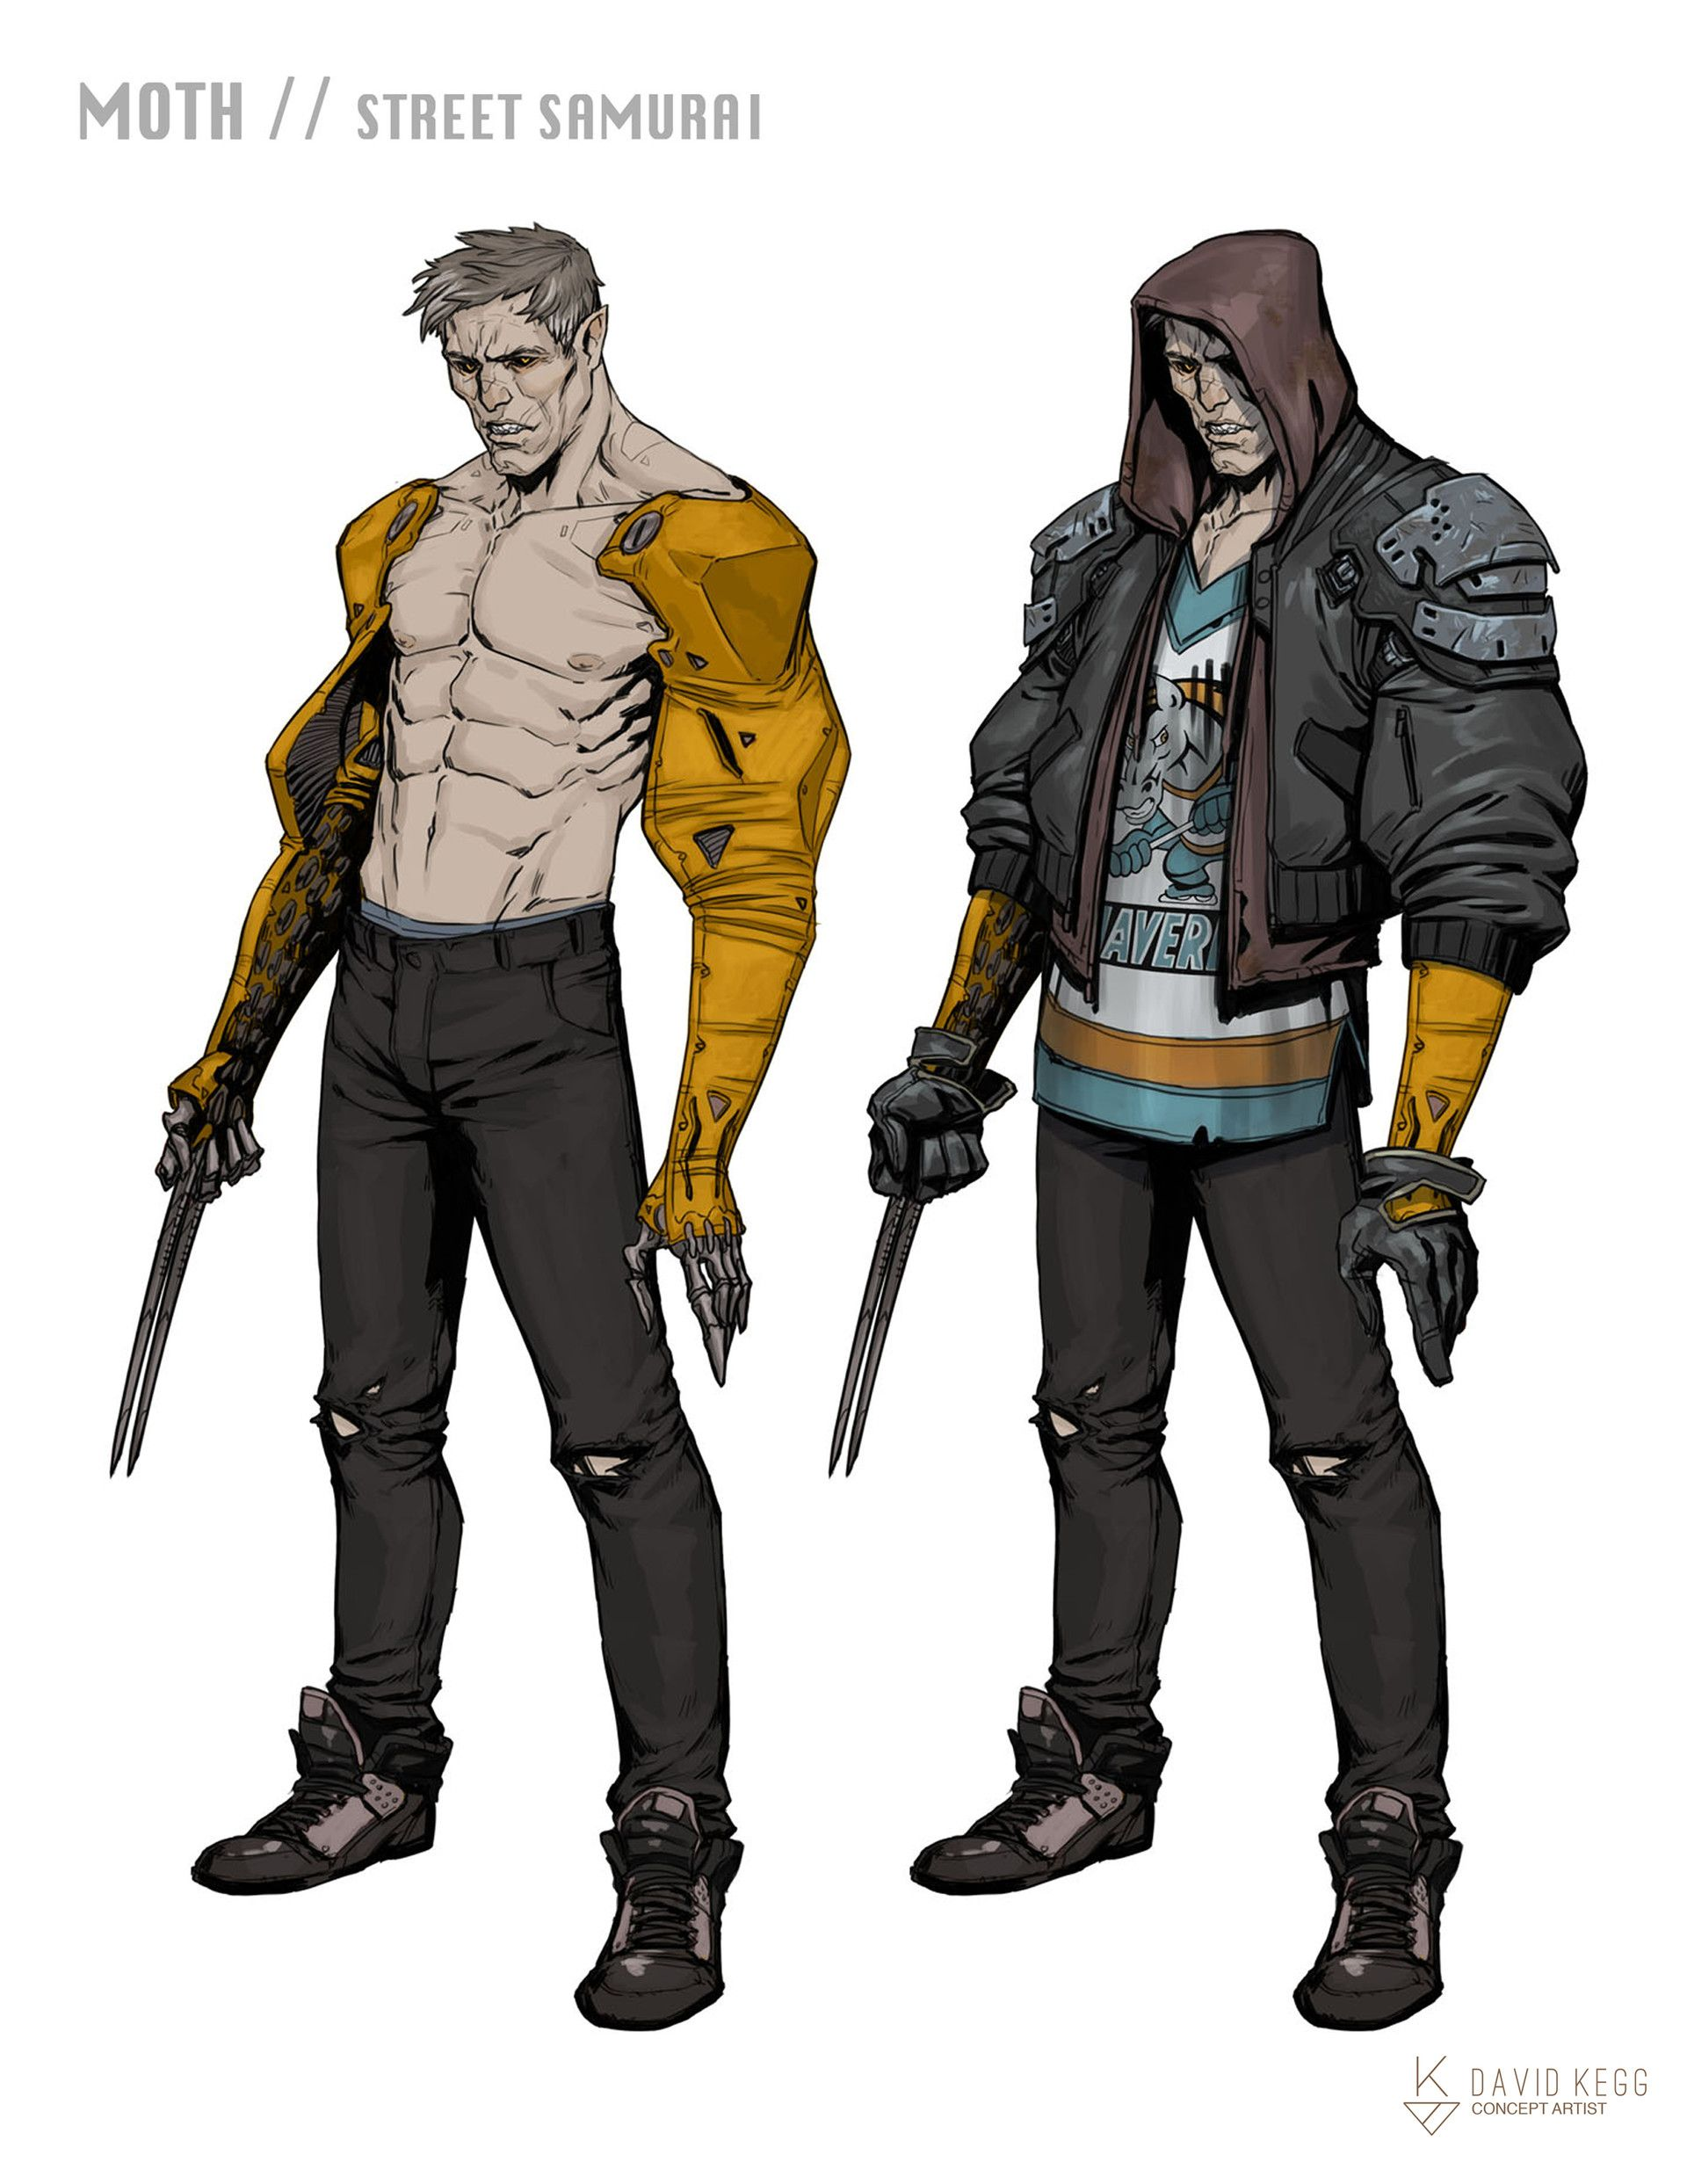 Concept Character Design Brief : Artstation rpg characters moth street samurai david